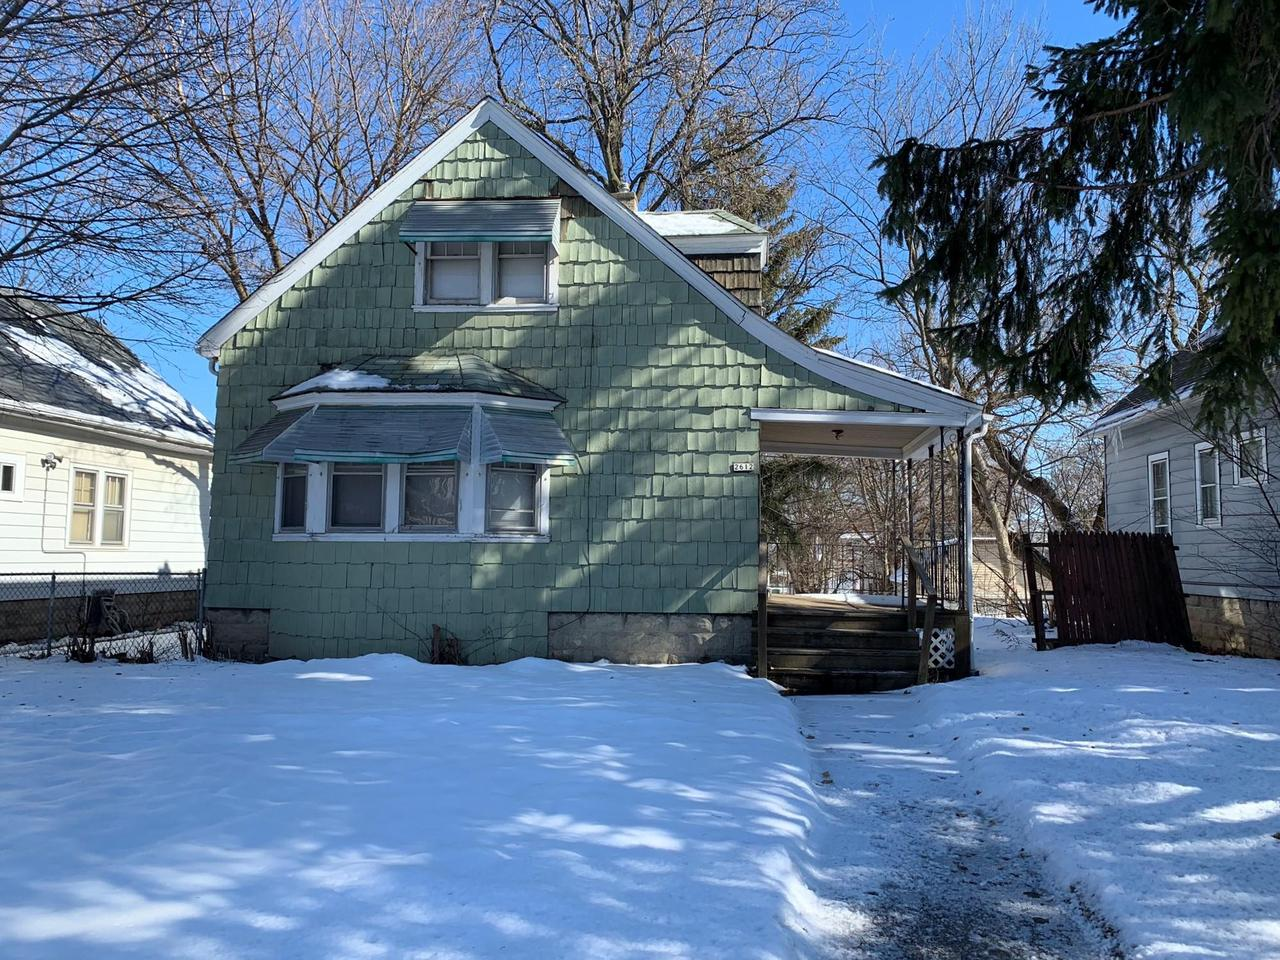 This single-family home needs TLC to shine again! Great potential and location. Original woodwork and wood floors remain but floors need work. There are 2 parking spaces off the alley in the back.